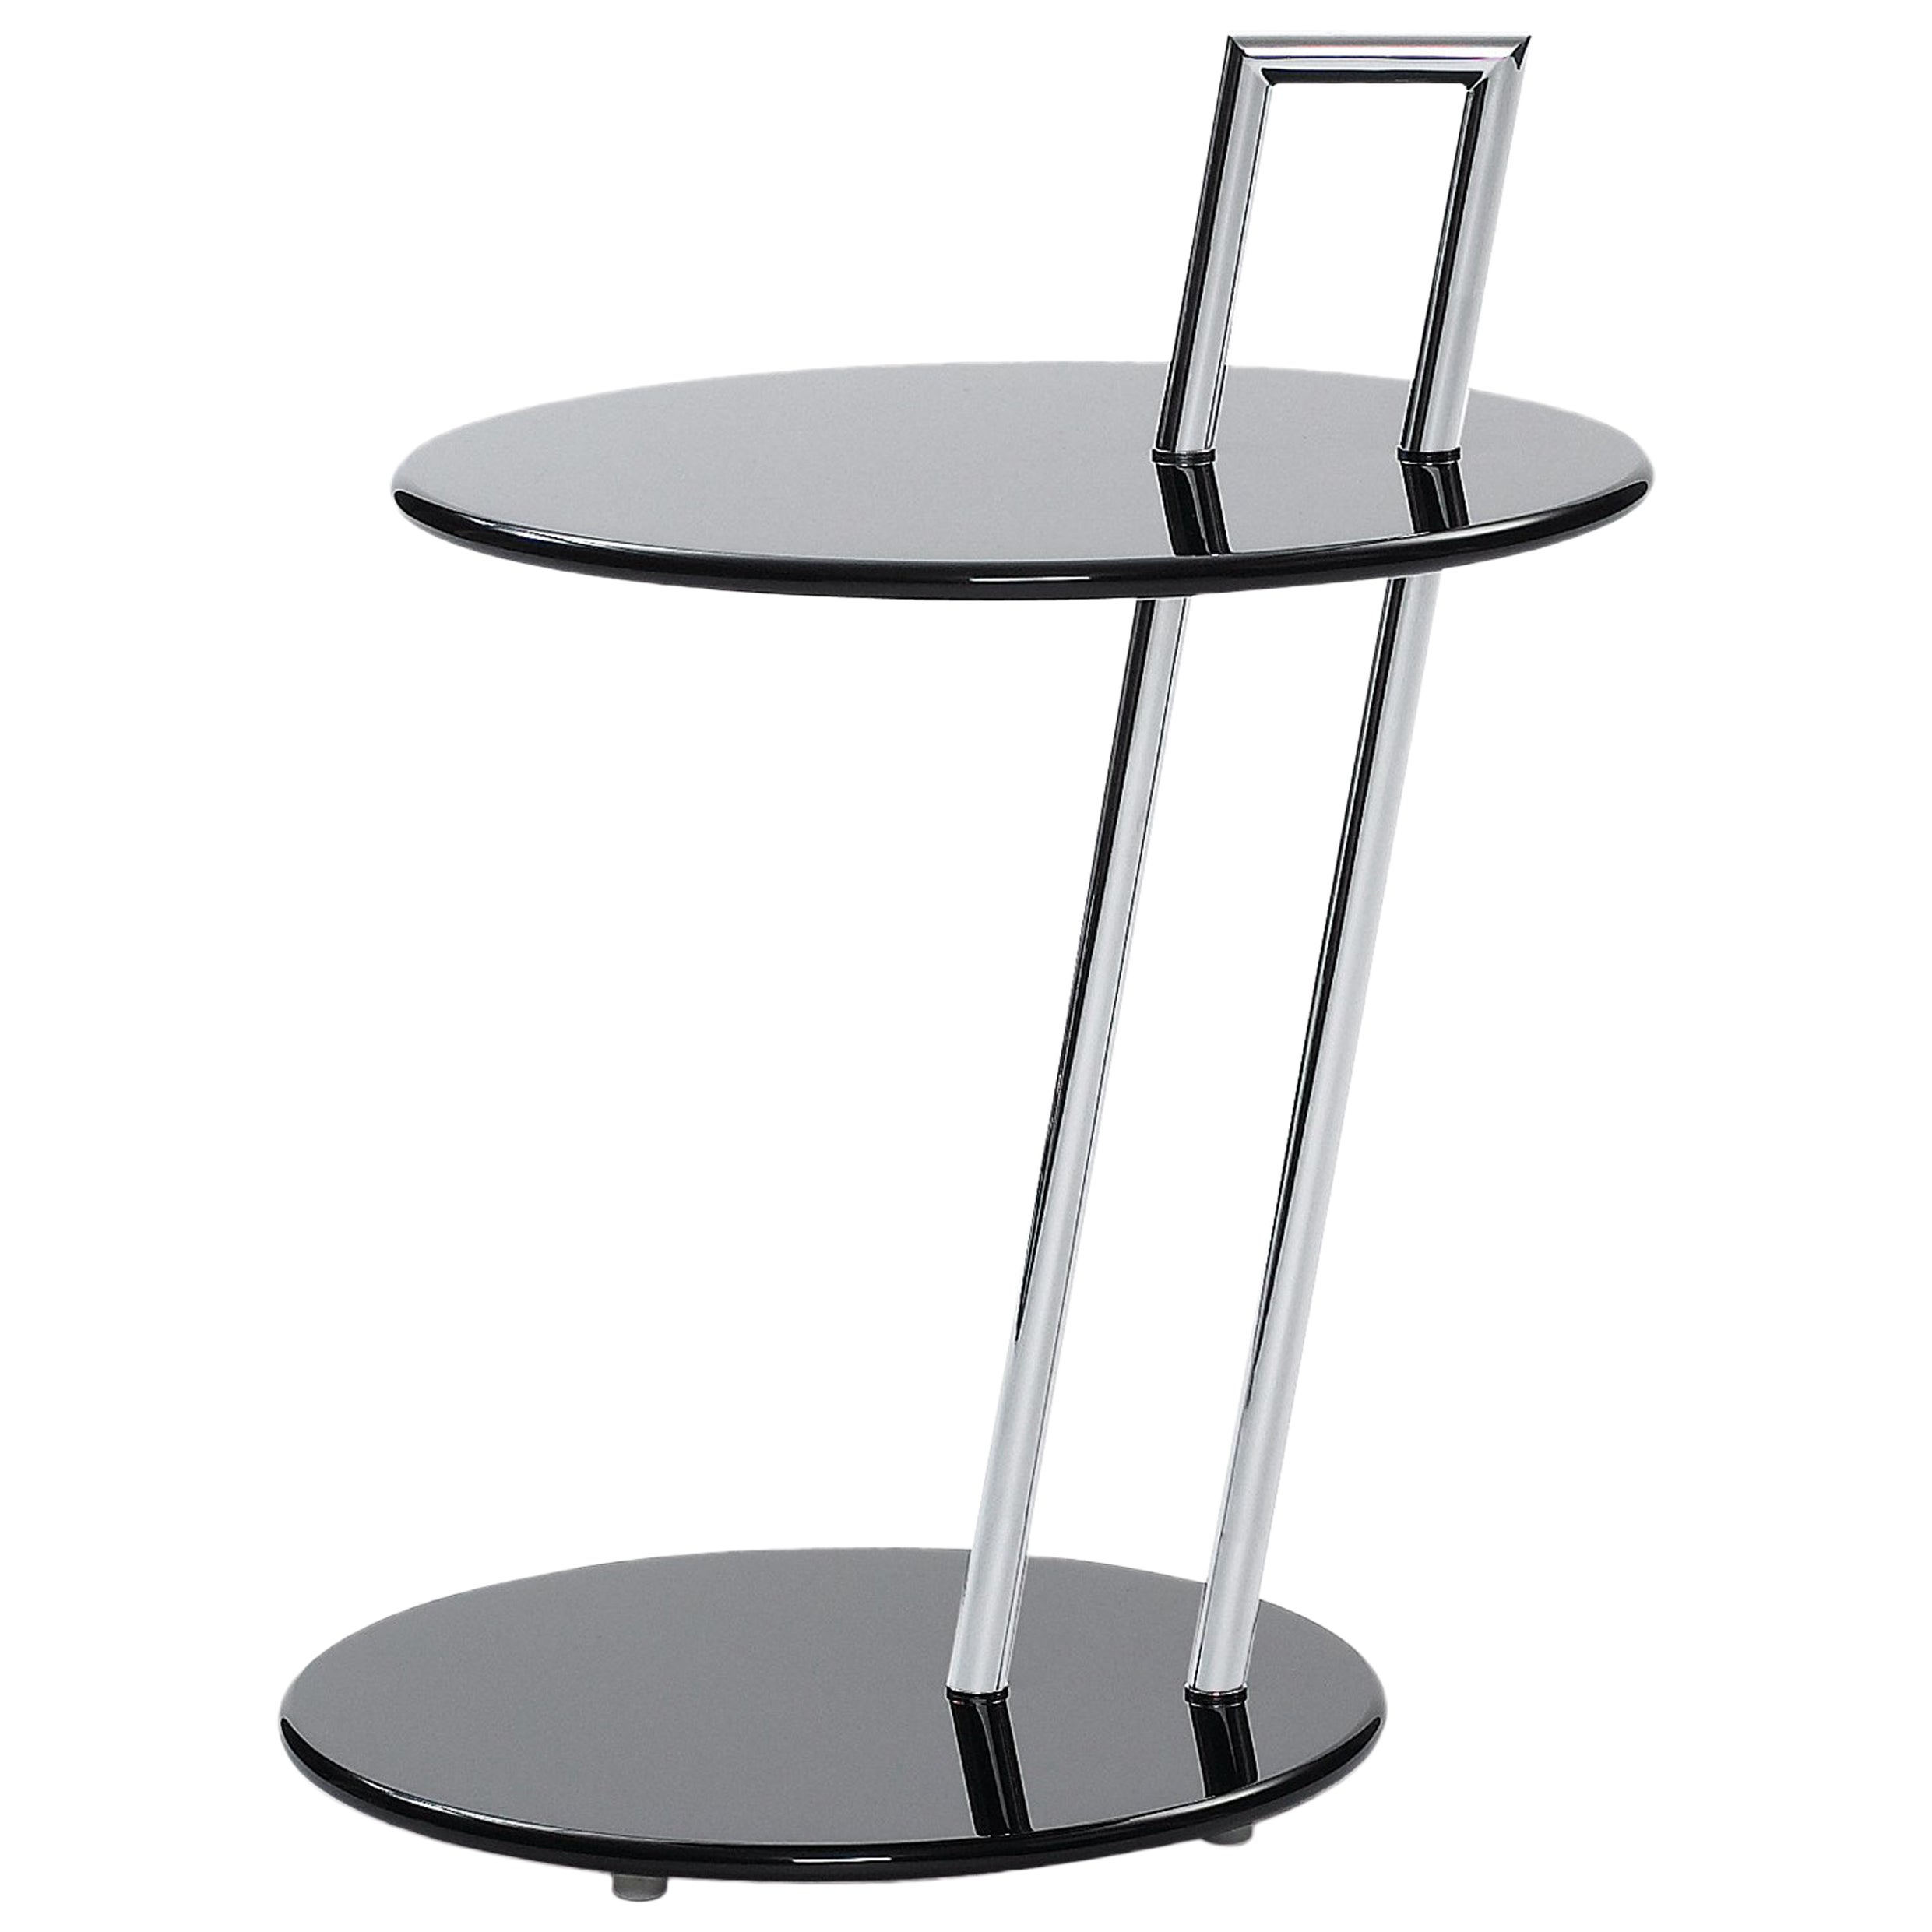 ClassiCon Occasional Round Side Table in Black by Eileen Gray